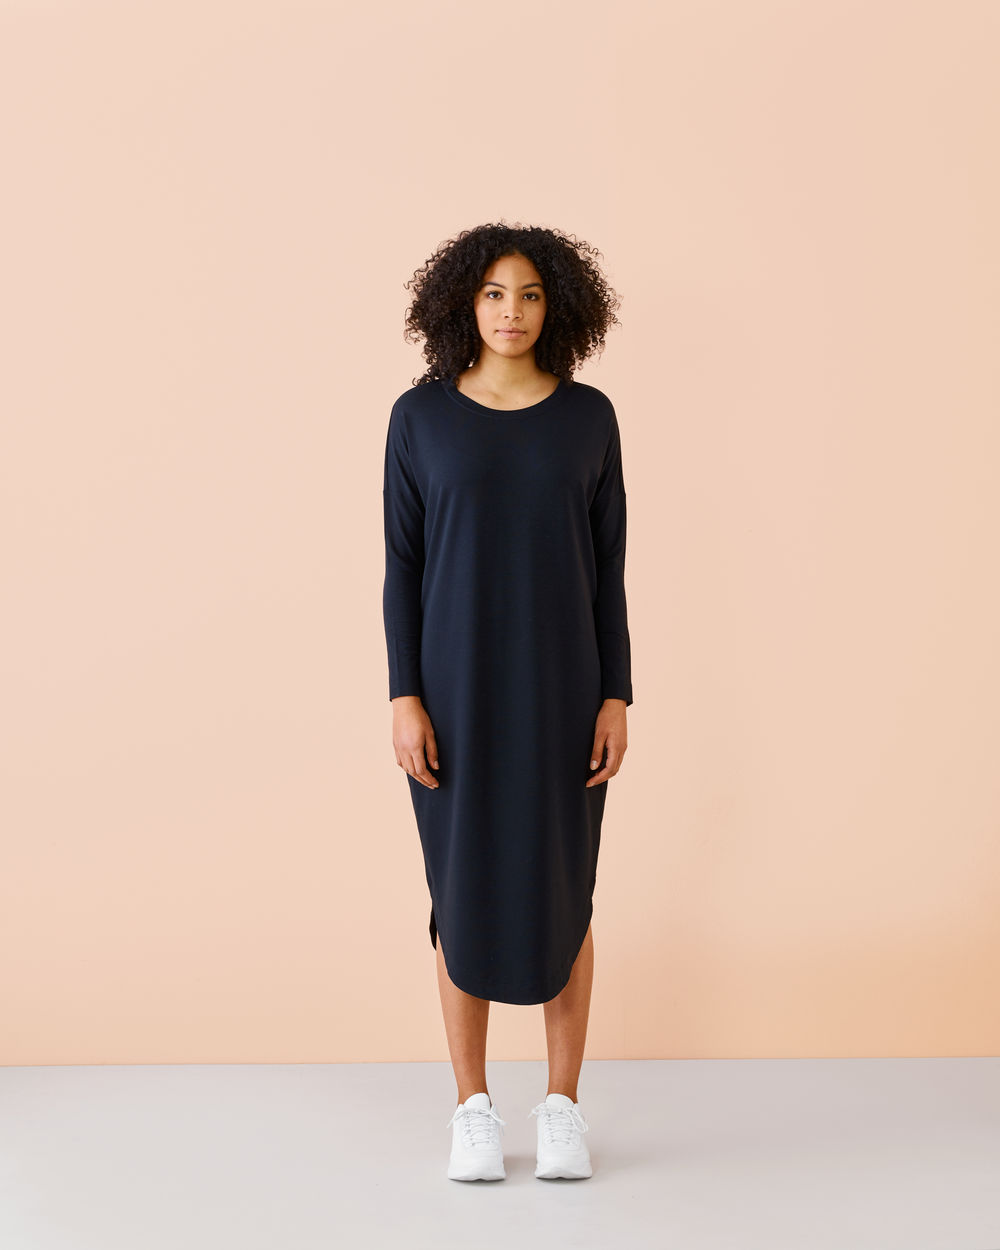 Round Hem Dress, black